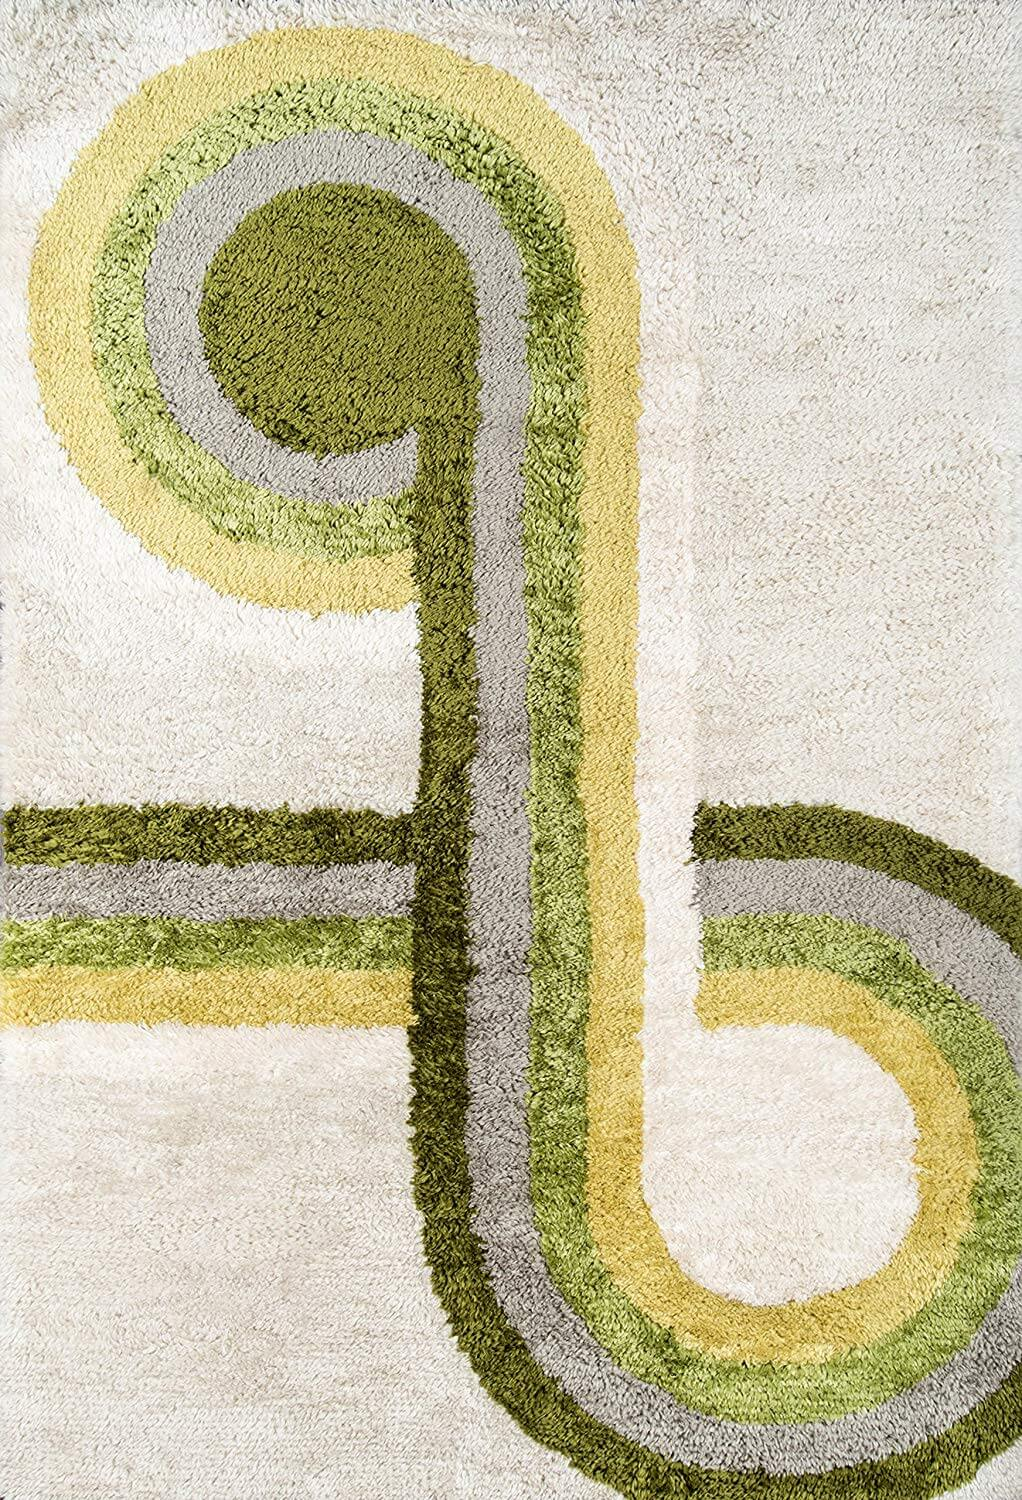 A mid-century rug with a swerving-pattern in differing shades of green, grey, white, and yellow.